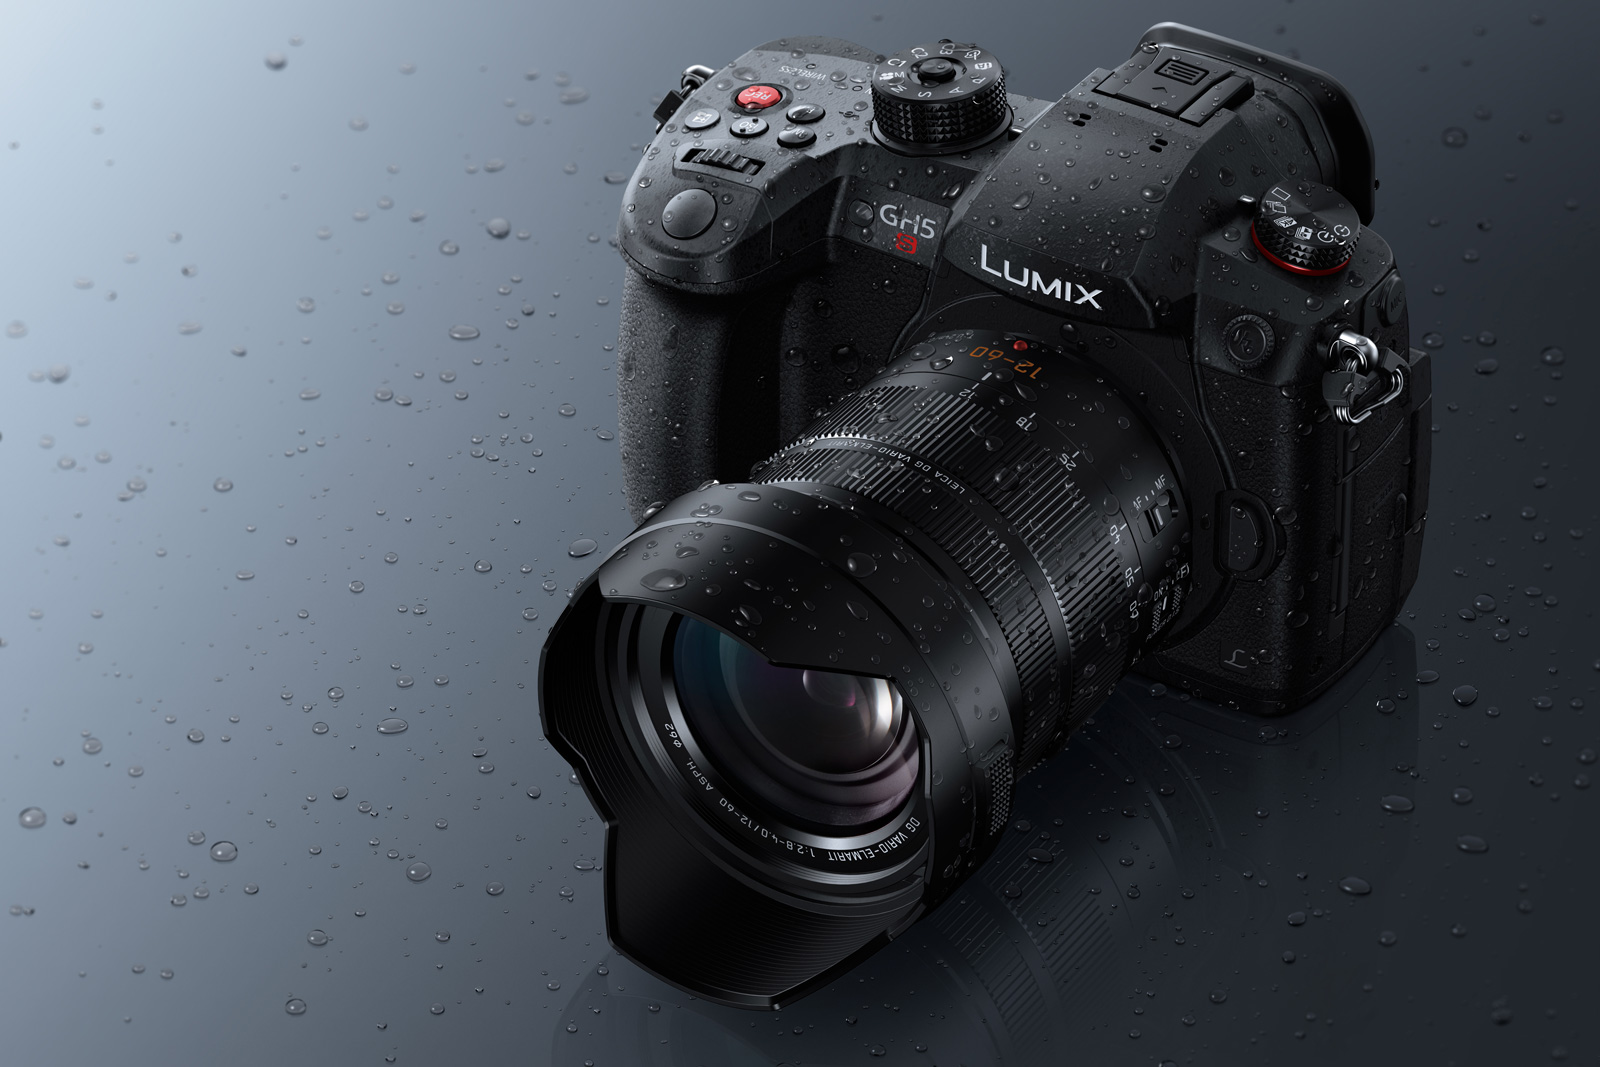 Panasonic Announces GH5S with Expanded Video Capabilities